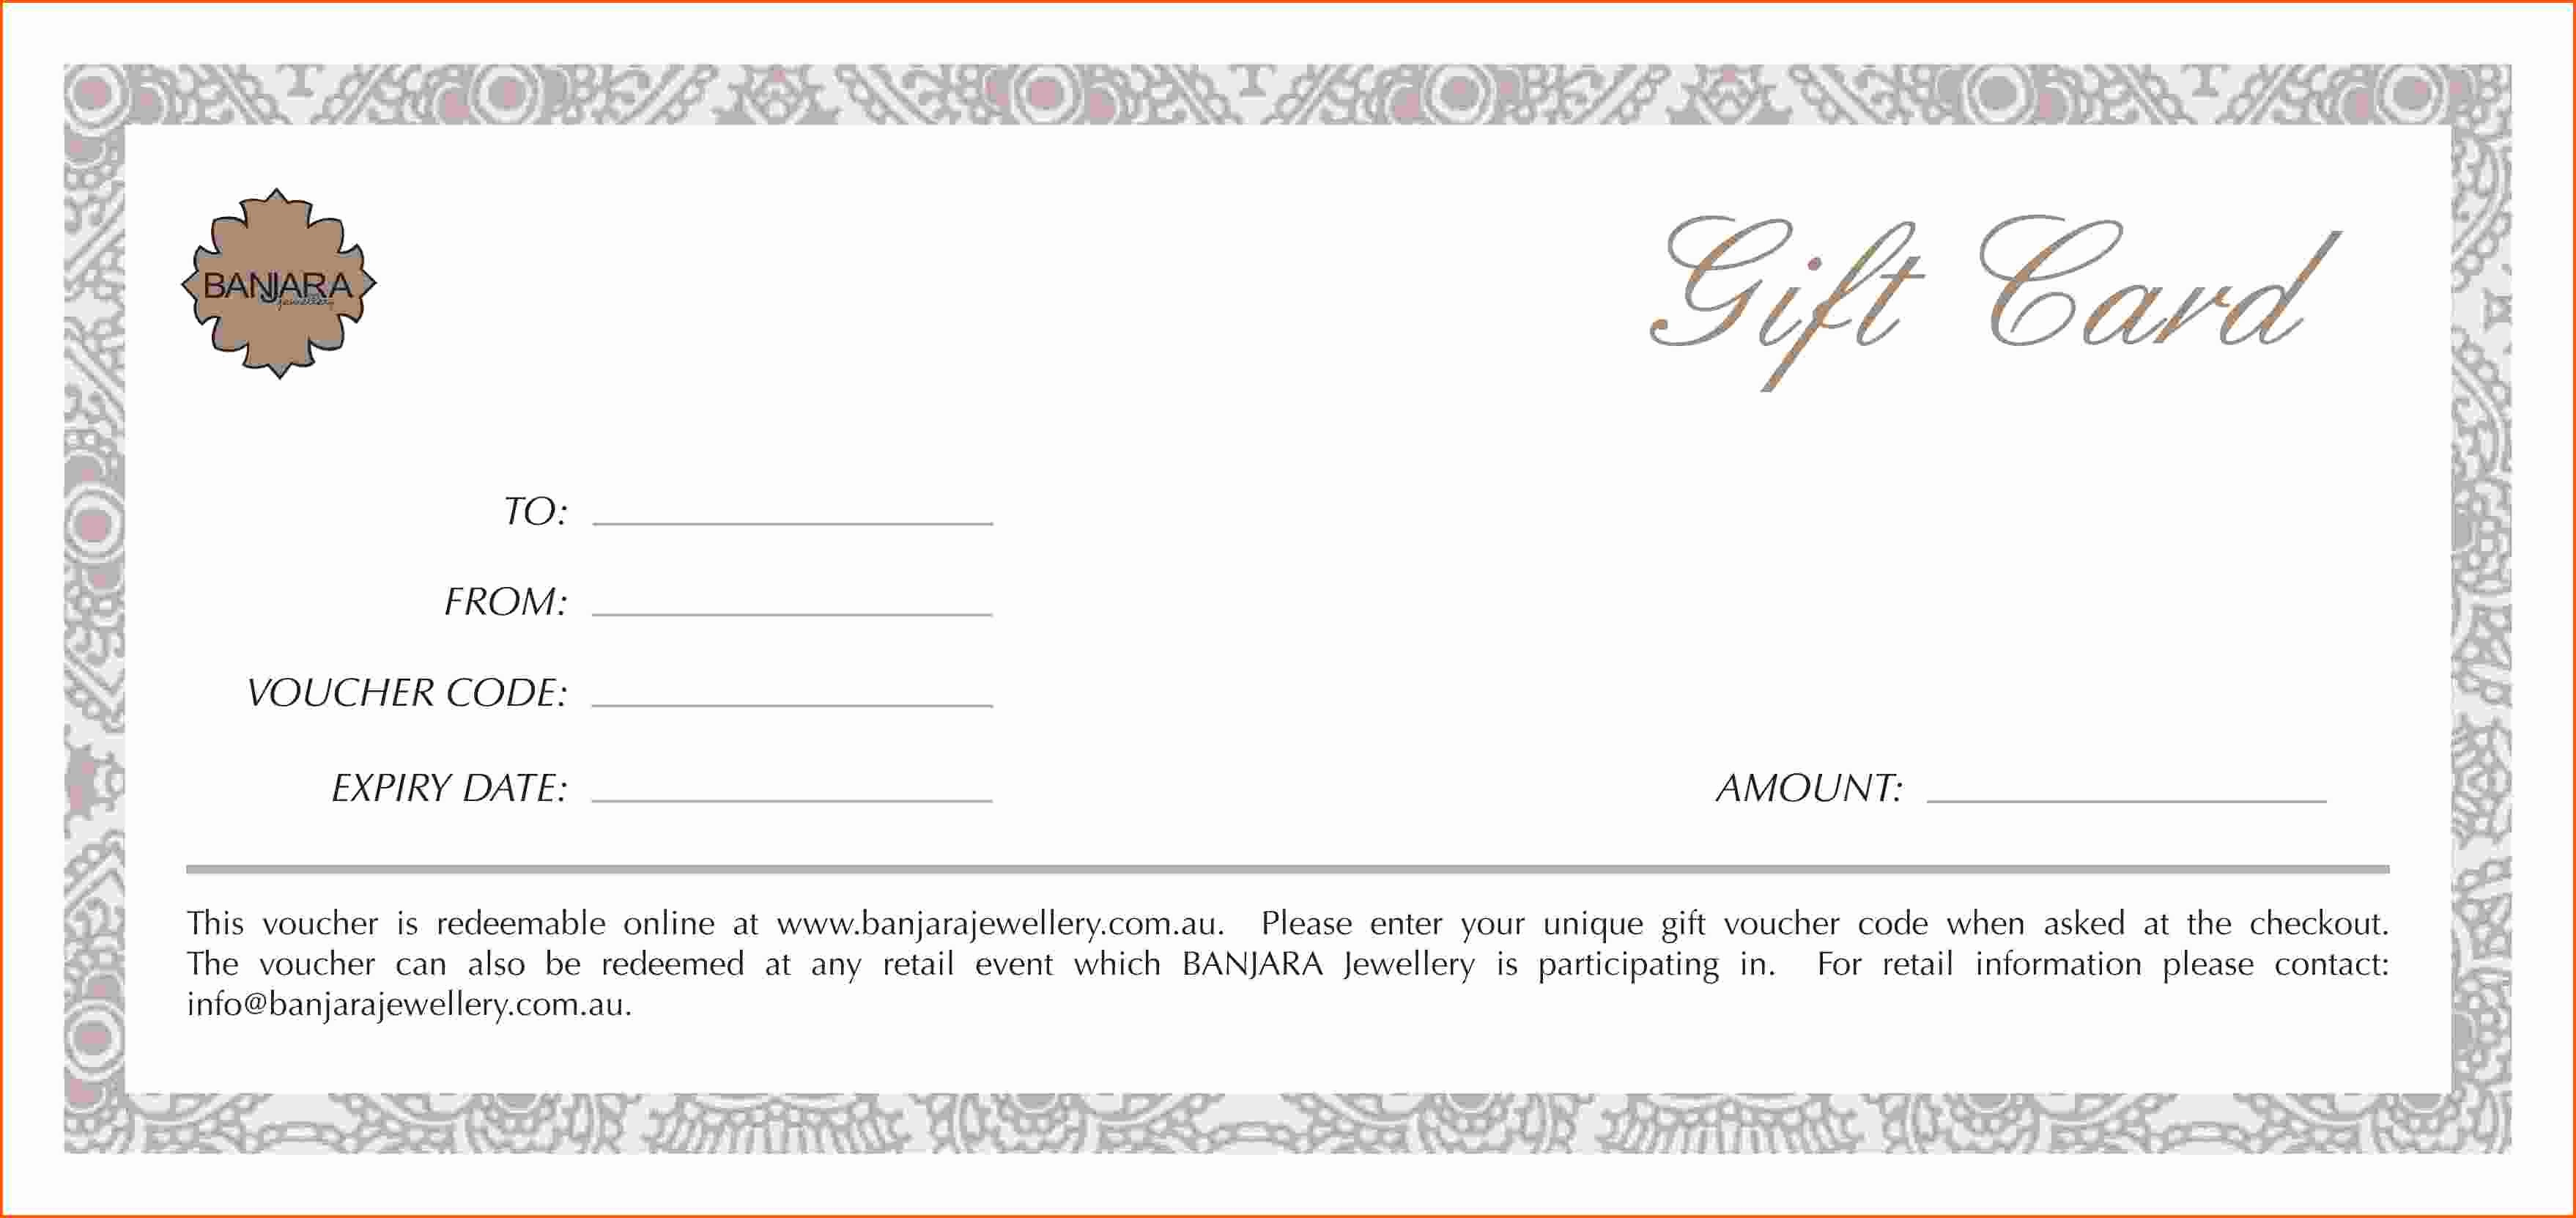 Gift Certificate Samples Free Templates Beautiful 24 Exceptional Design Samples for Gift Vouchers Templates